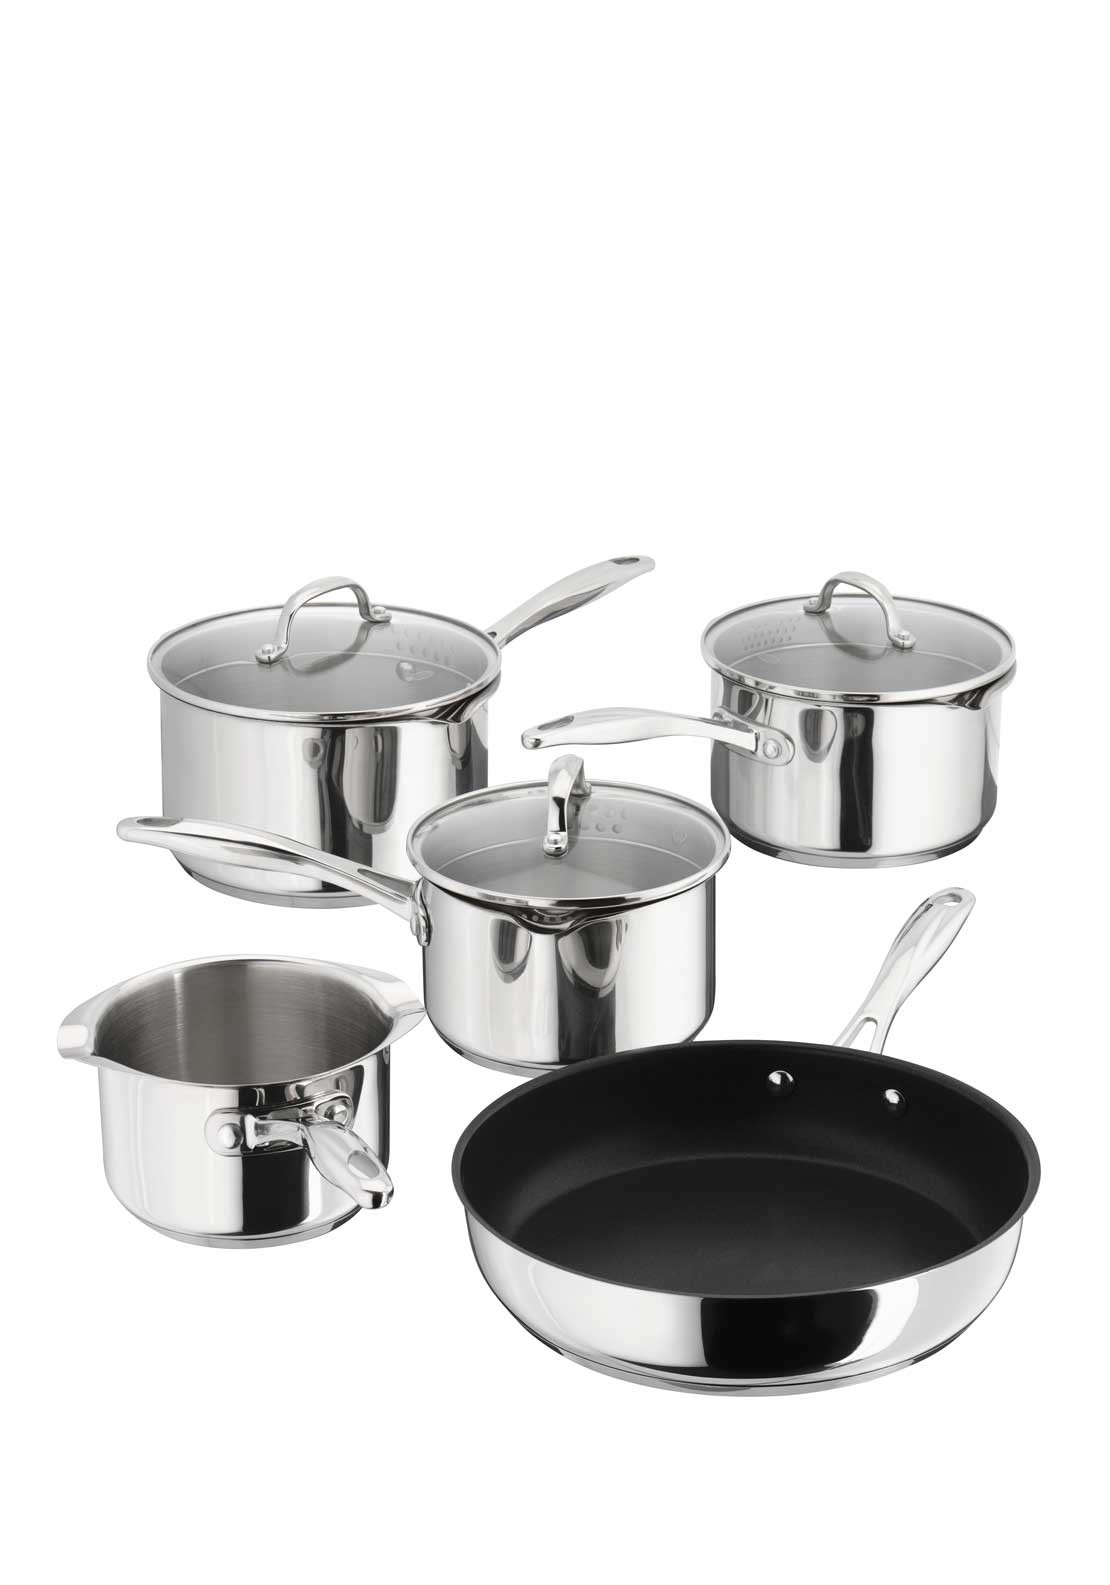 Stellar 5 Piece Induction Pan Set